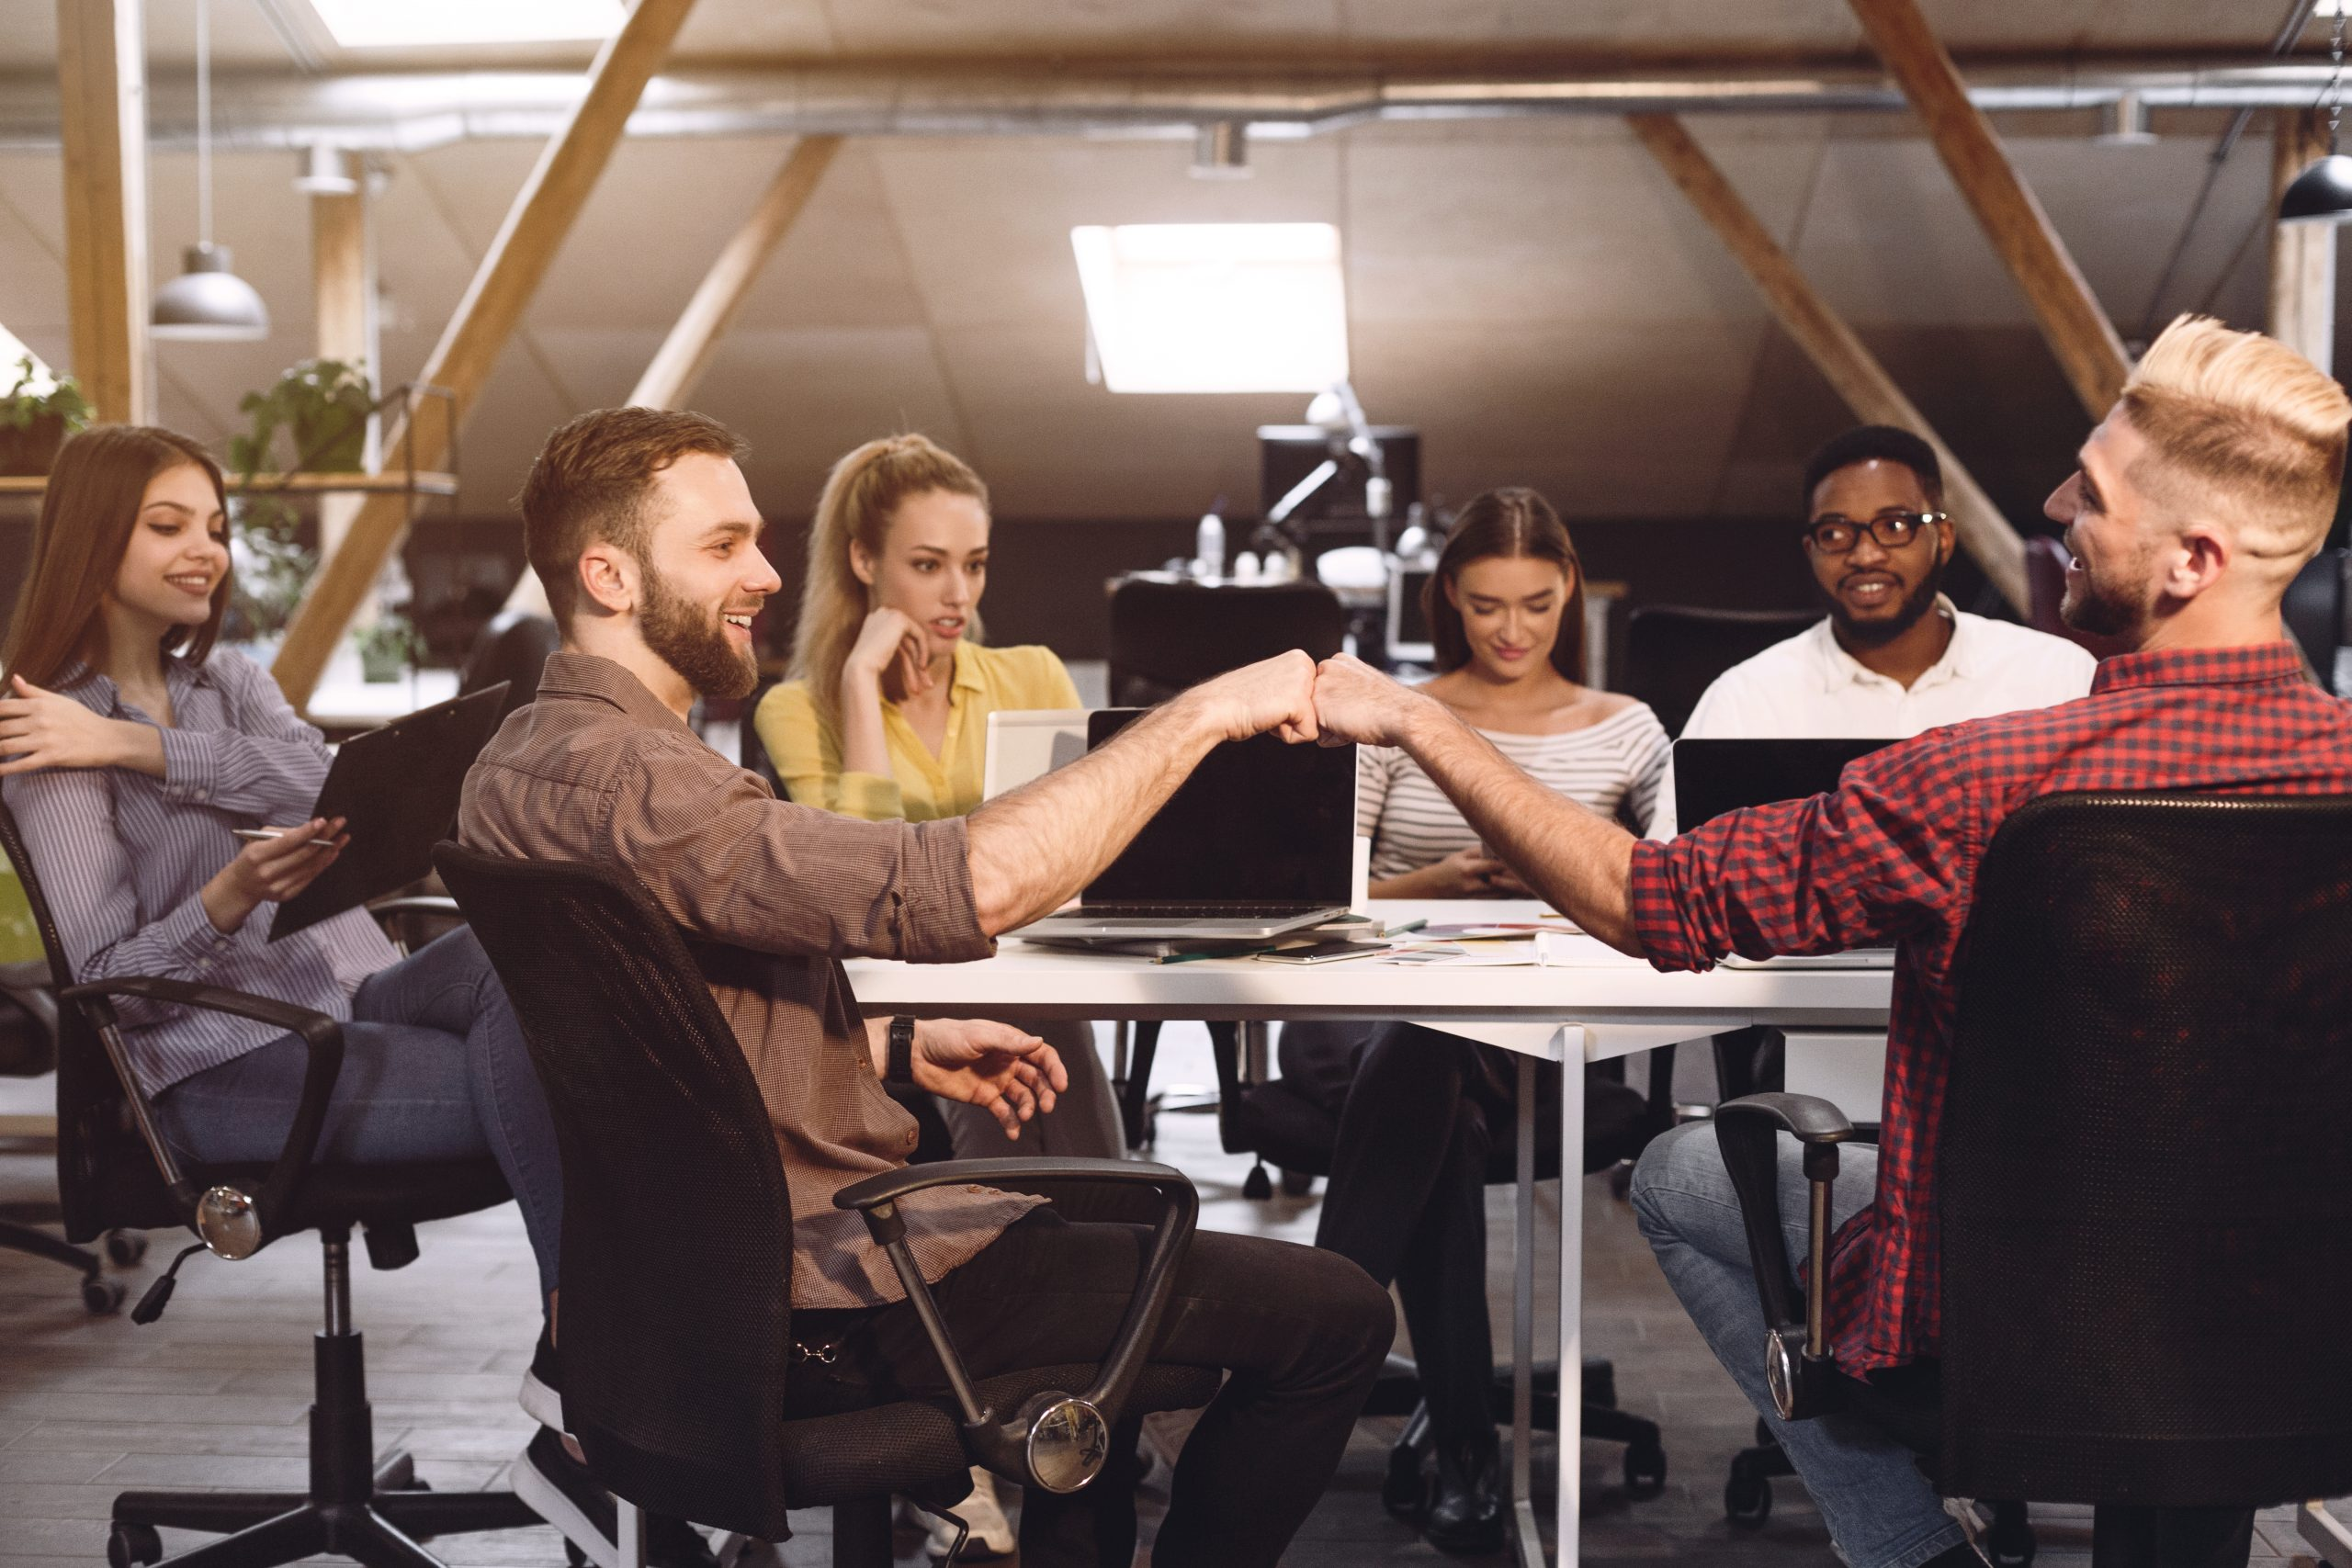 Motivated workplace culture